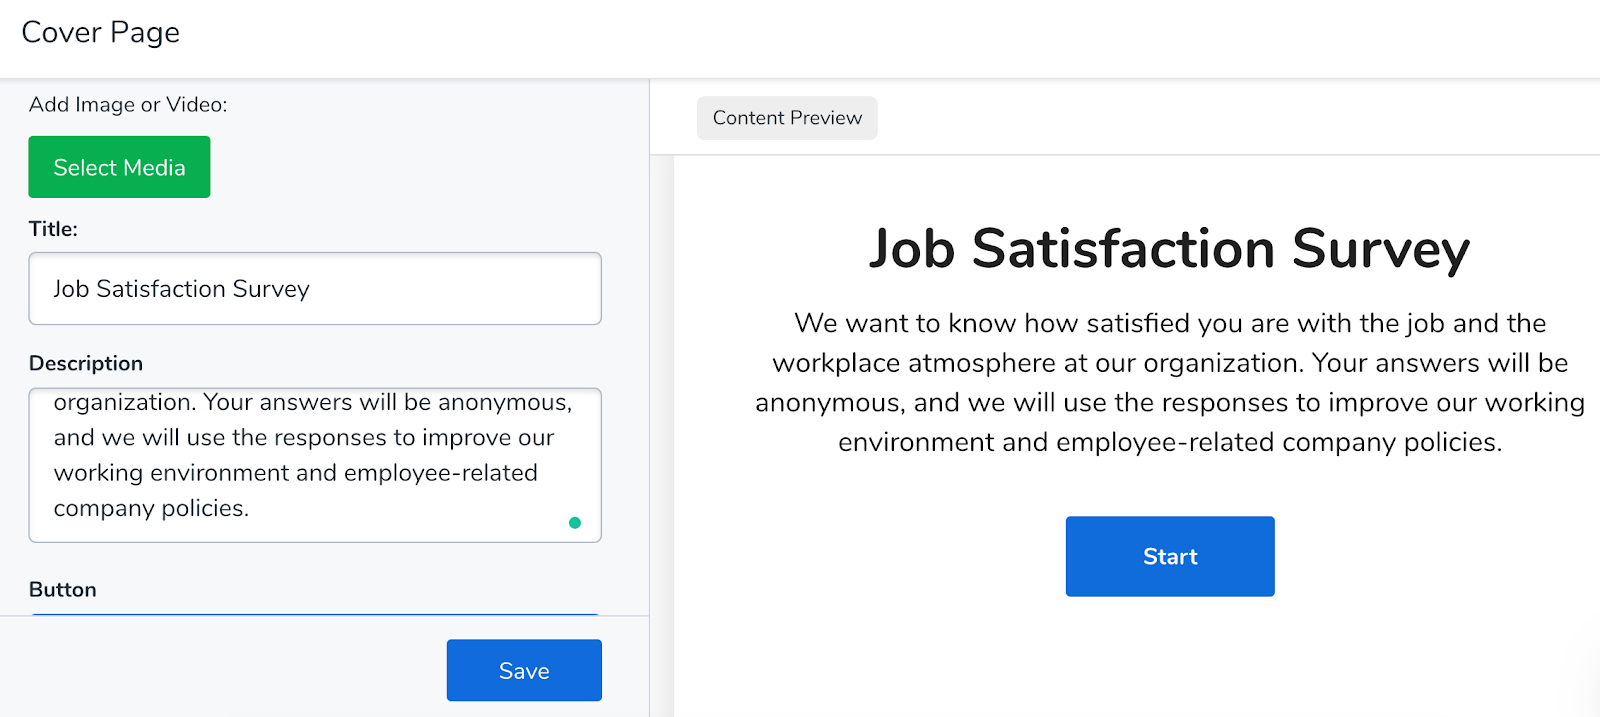 Job Satisfaction Survey Introduction